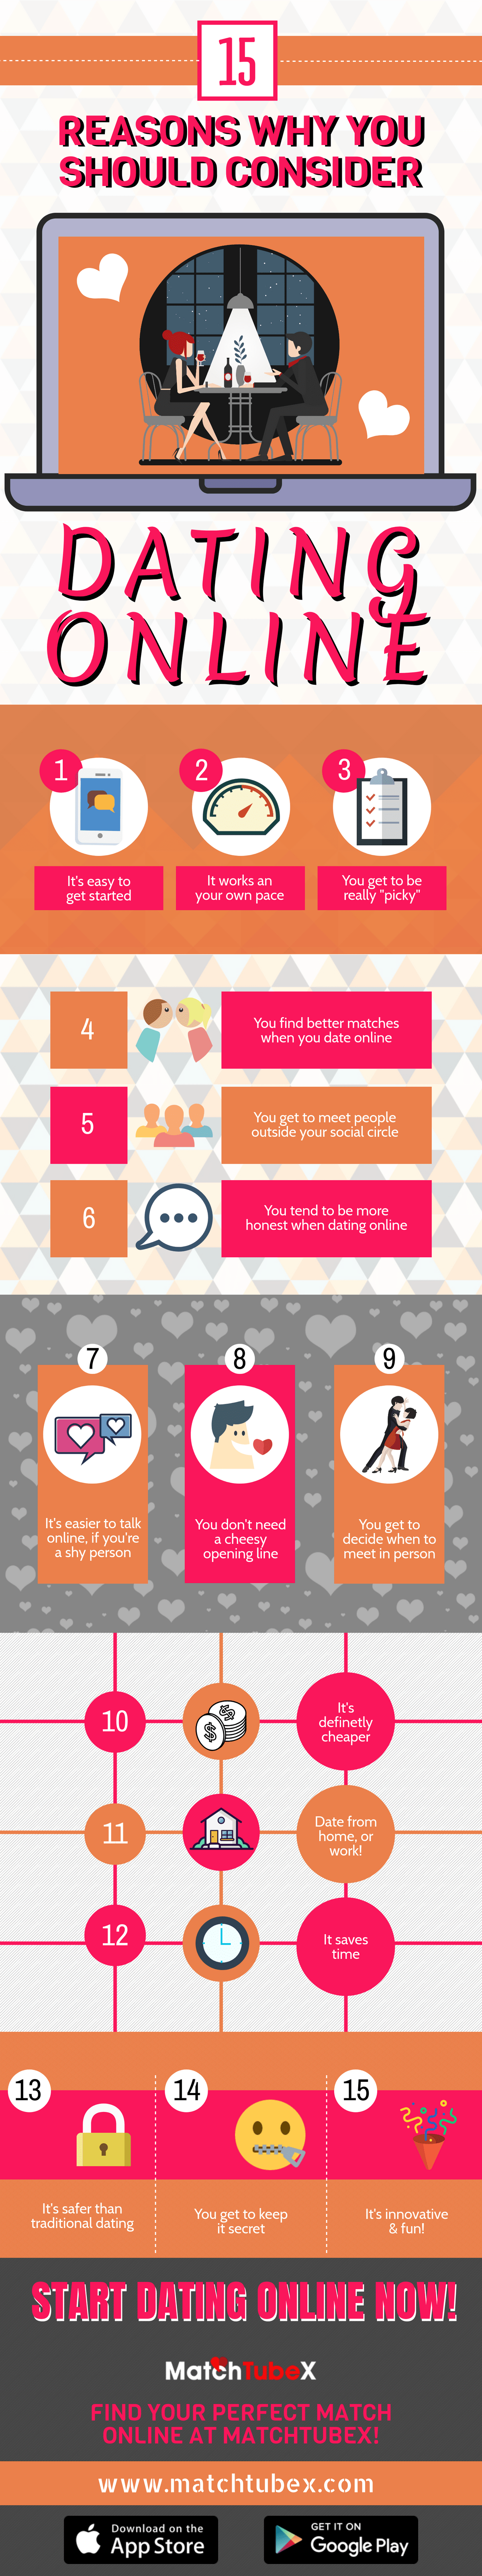 reasons for dating online